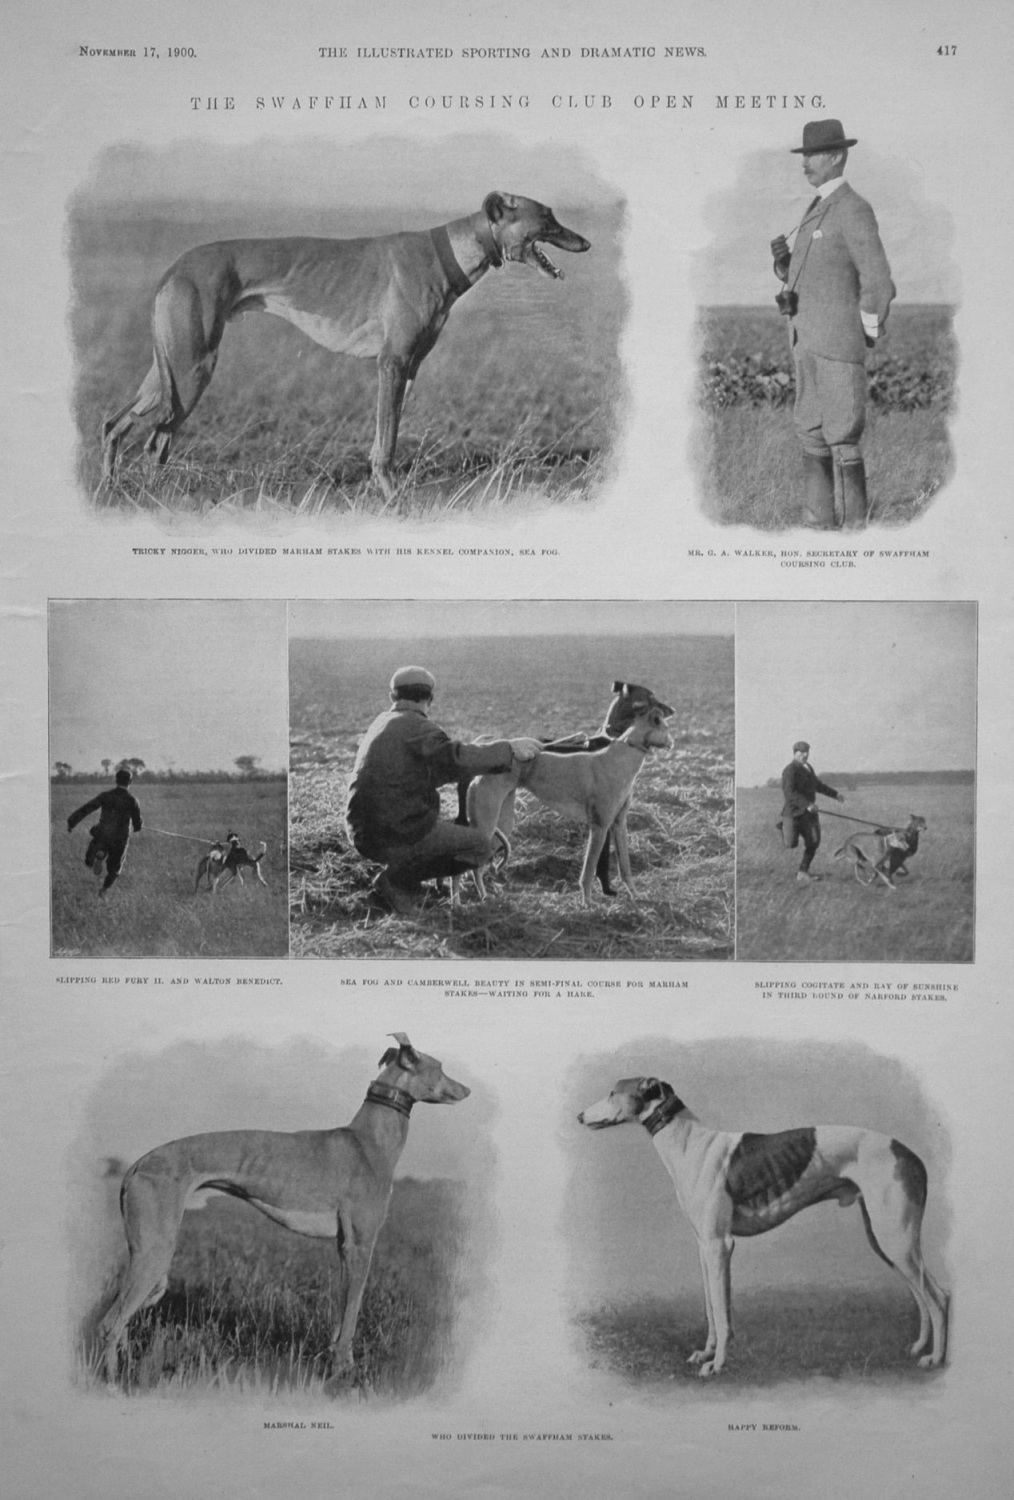 The Swaffam Coursing Club Open Meeting. Dogs. 1900